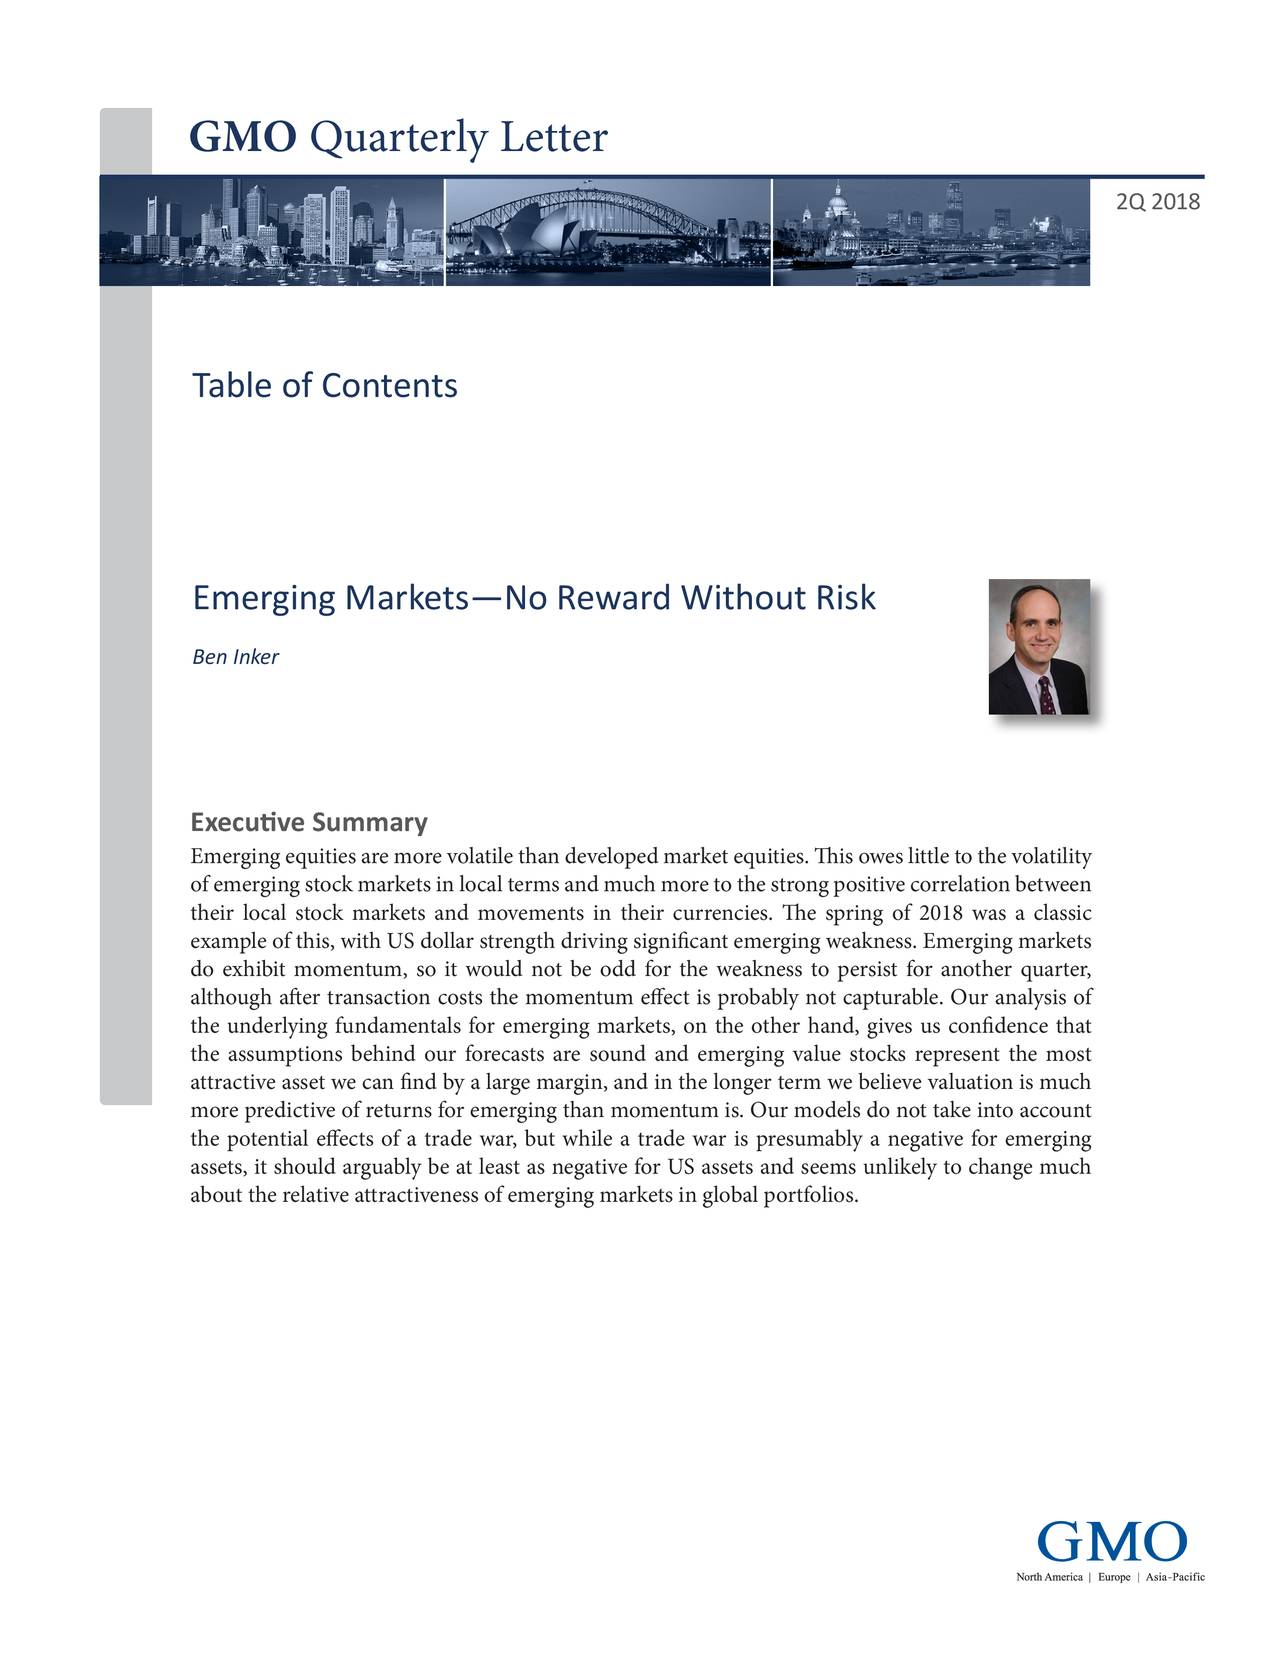 2Q 2018 Table of Contents Emerging Markets—No Reward Without Risk Ben Inker Executive Summary Emerging equities are more volatile than developed market equities. This owes little to the volatility of emerging stock markets in local terms and much more to the strong positive correlation between their local stock markets and movements in their currencies. The spring of 2018 was a classic example of this, with US dollar strength driving significant emerging weakness. Emerging markets do exhibit momentum, so it would not be odd for the weakness to persist for another quarter, although after transaction costs the momentum effect is probably not capturable. Our analysis of the underlying fundamentals for emerging markets, on the other hand, gives us confidence that the assumptions behind our forecasts are sound and emerging value stocks represent the most attractive asset we can find by a large margin, and in the longer term we believe valuation is much more predictive of returns for emerging than momentum is. Our models do not take into account the potential effects of a trade war, but while a trade war is presumably a negative for emerging assets, it should arguably be at least as negative for US assets and seems unlikely to change much about the relative attractiveness of emerging markets in global portfolios.